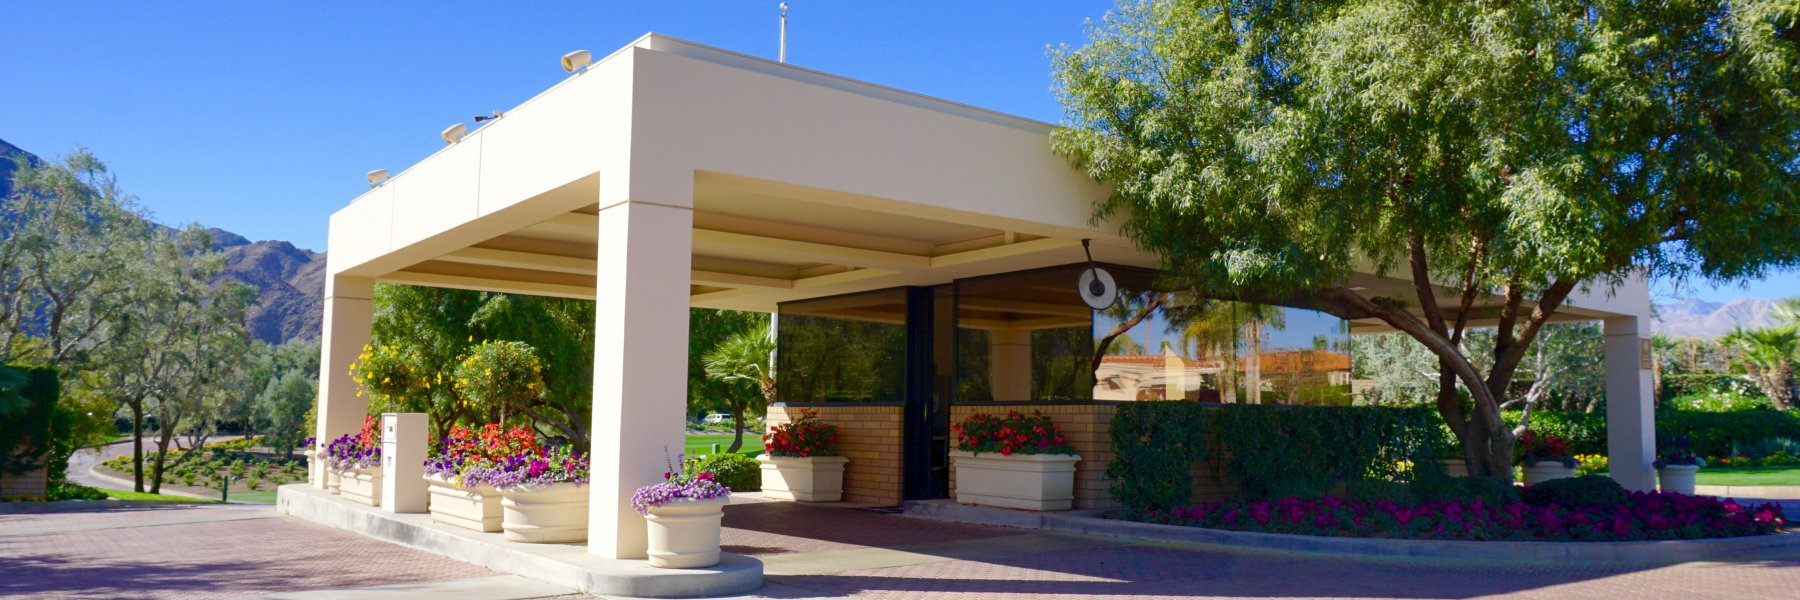 El Dorado Country Club is a community of homes in Indian Wells, California